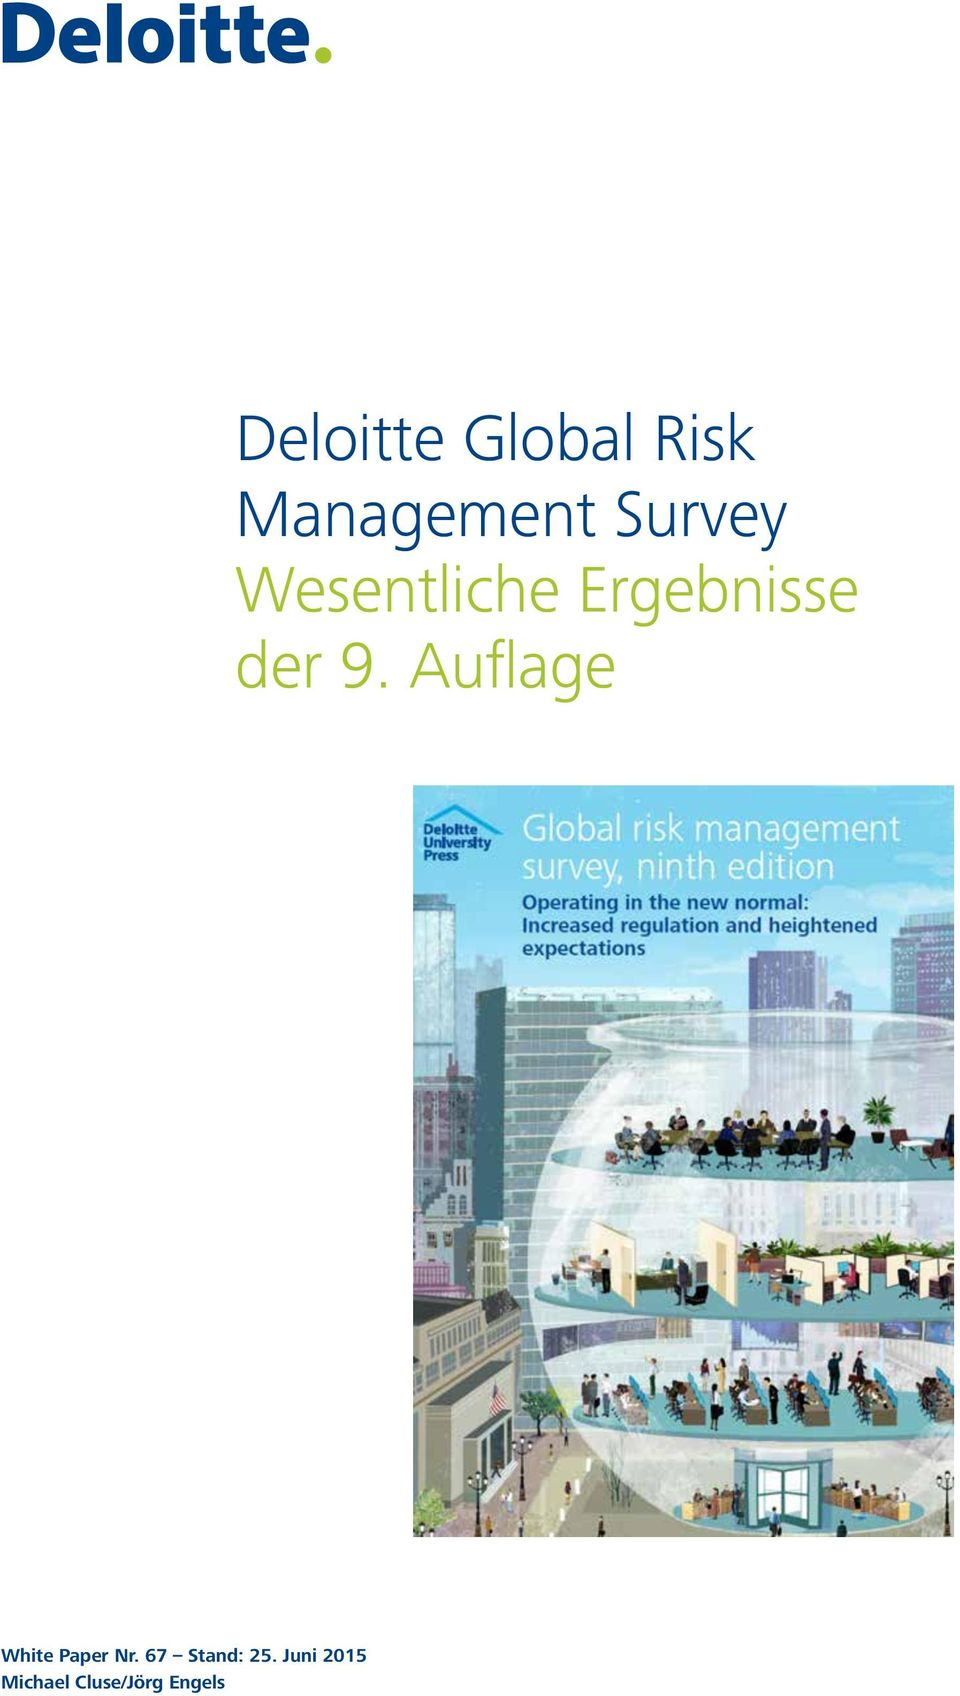 Deloitte Global Risk Management